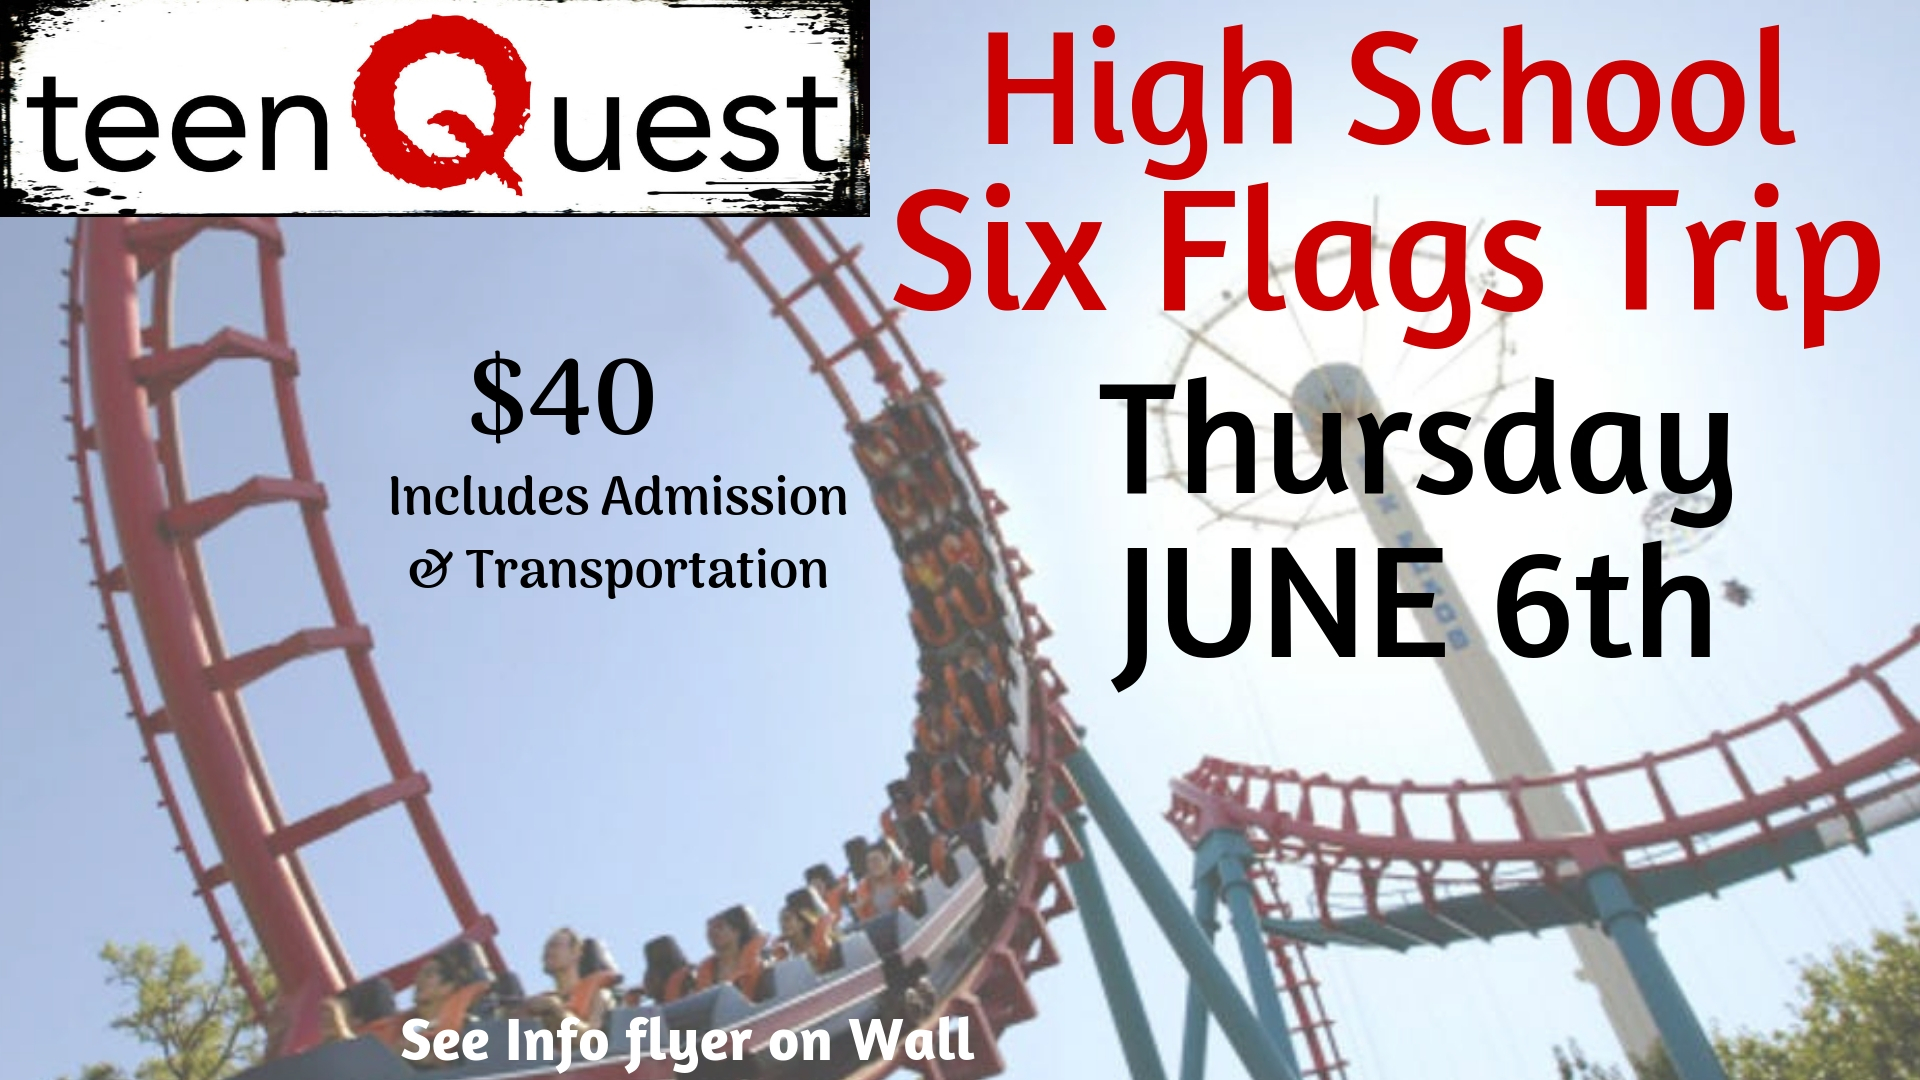 - Our TeenQuest group is heading to Six Flags Over Texas this summer! Be sure to have a 2019 medical release form on file and a signed Permission Slip. You cannot attend this event without these forms! Click Here for more details.  Register below to reserve your spot for a fun-filled day together! For more information contact Aaron Laramore (972.635.7222).